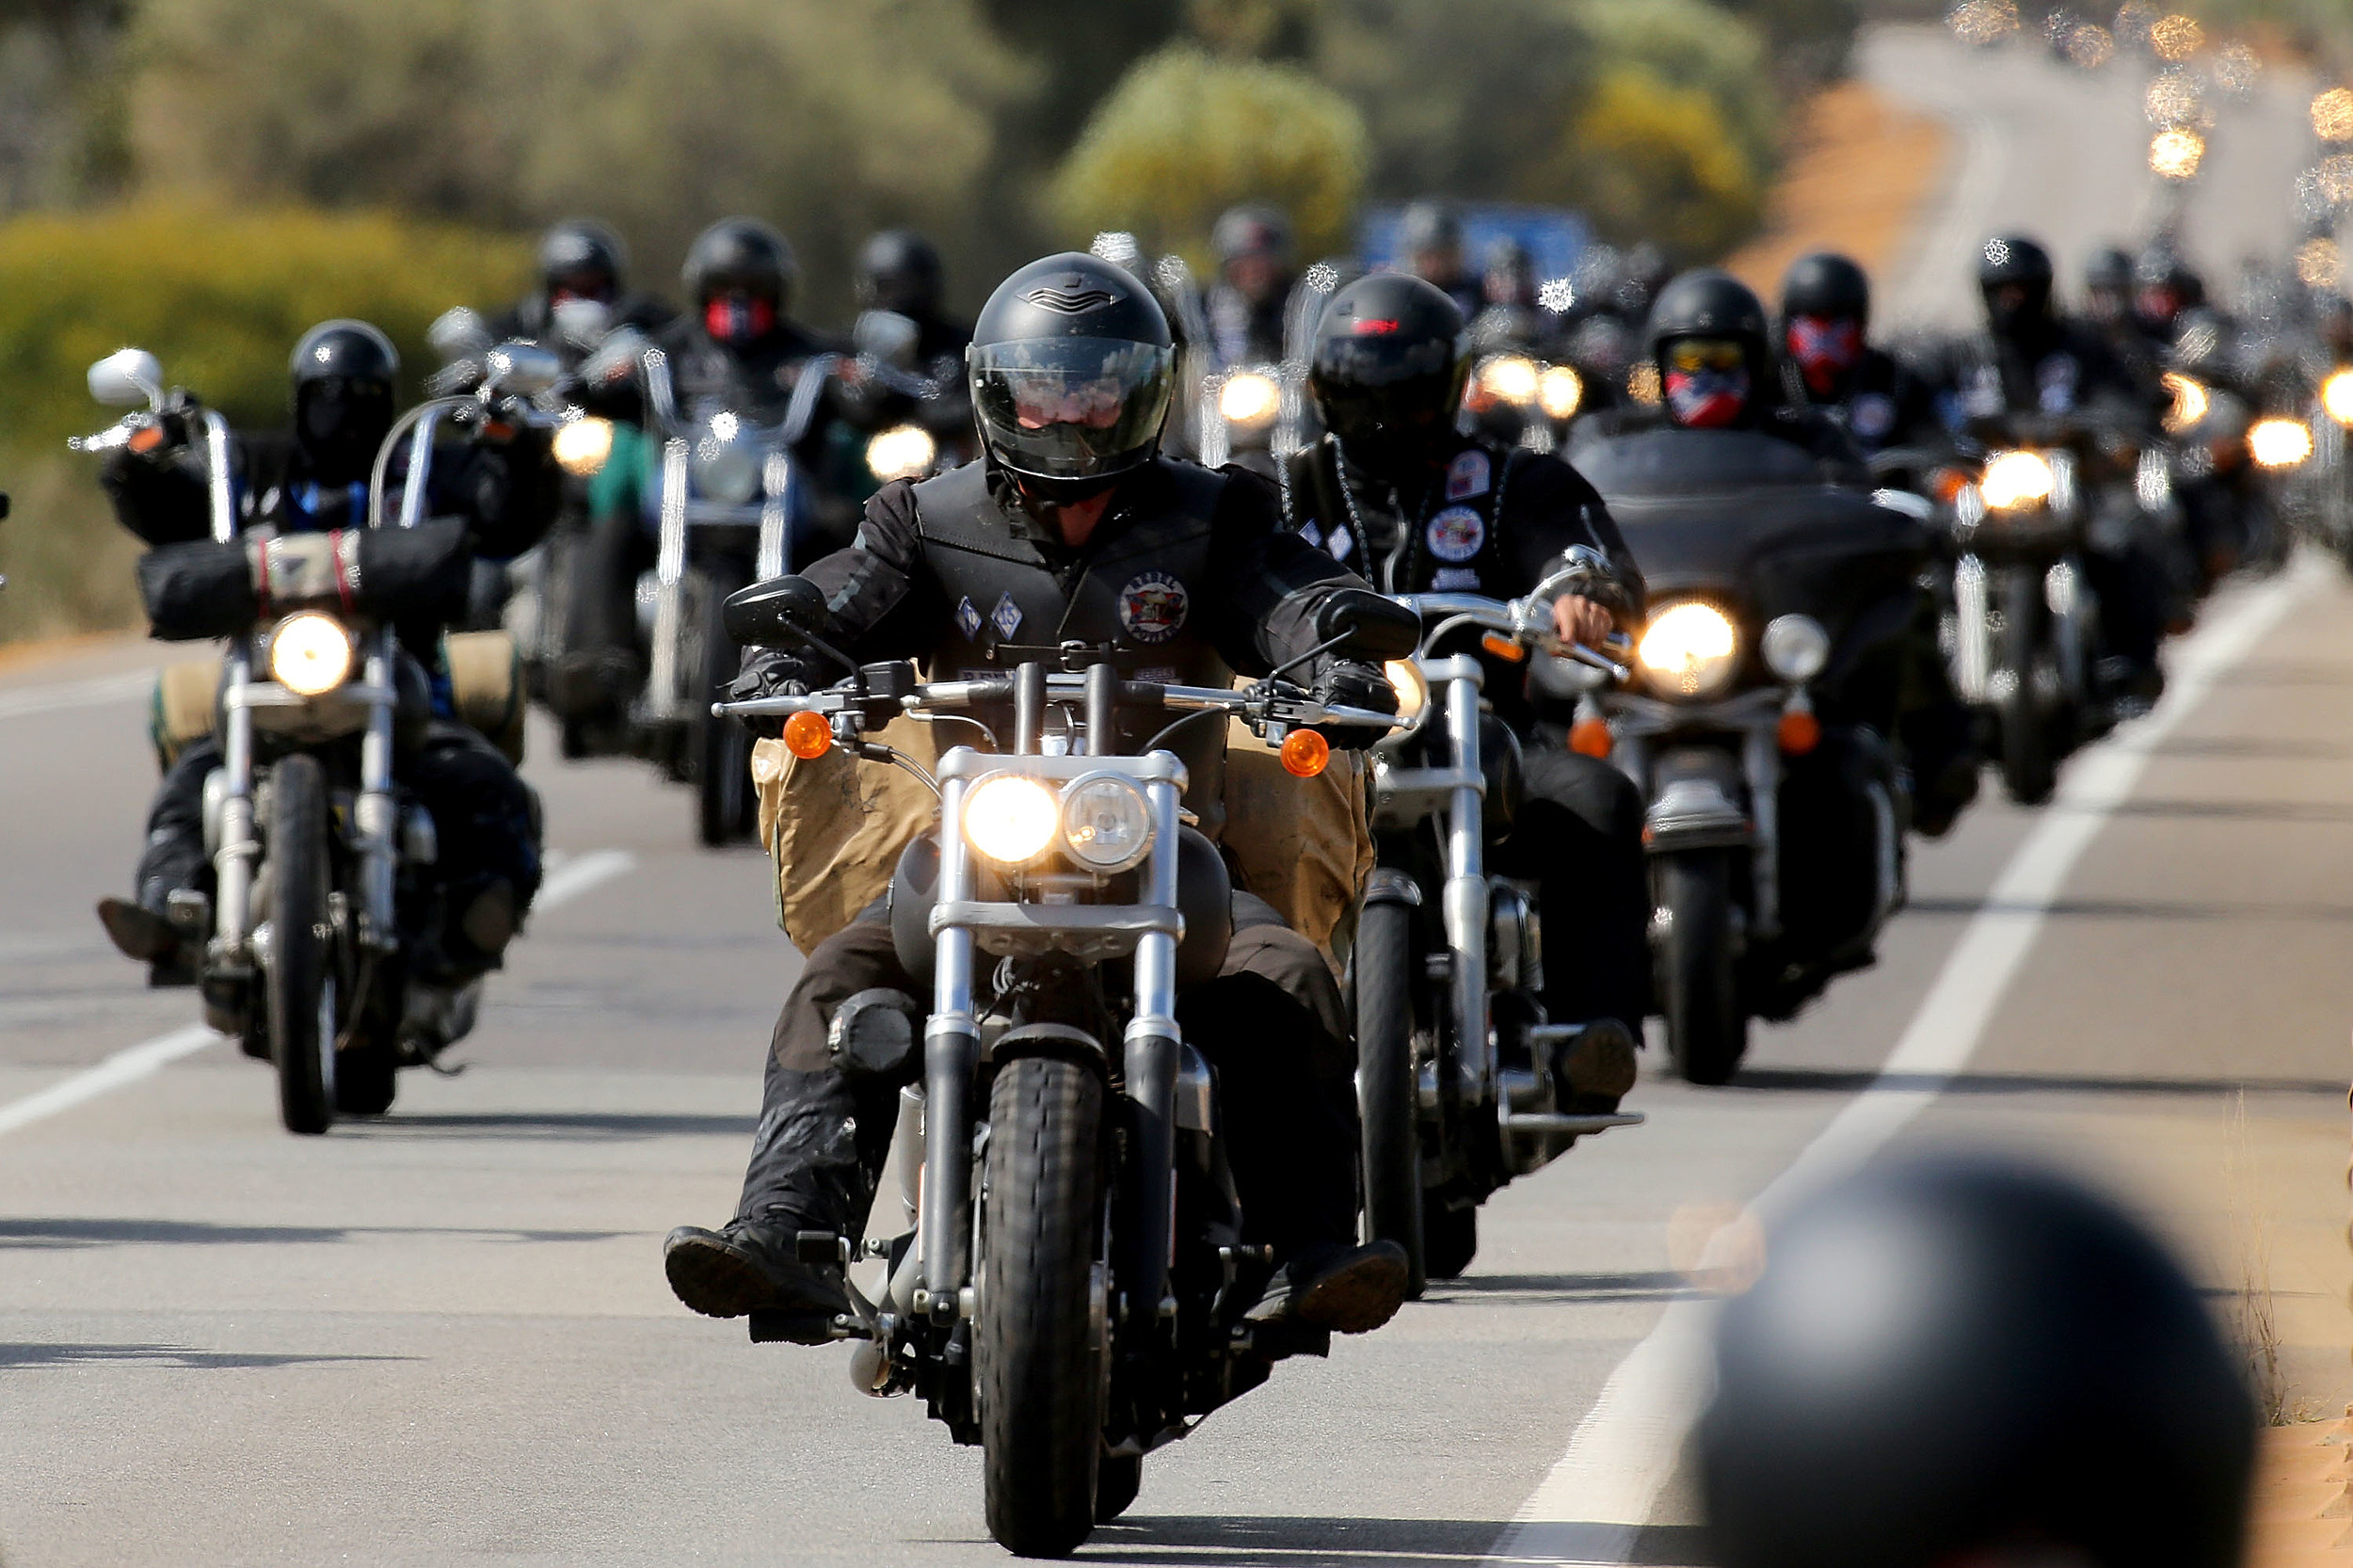 El Paso area bikers hold run to benefit _________________